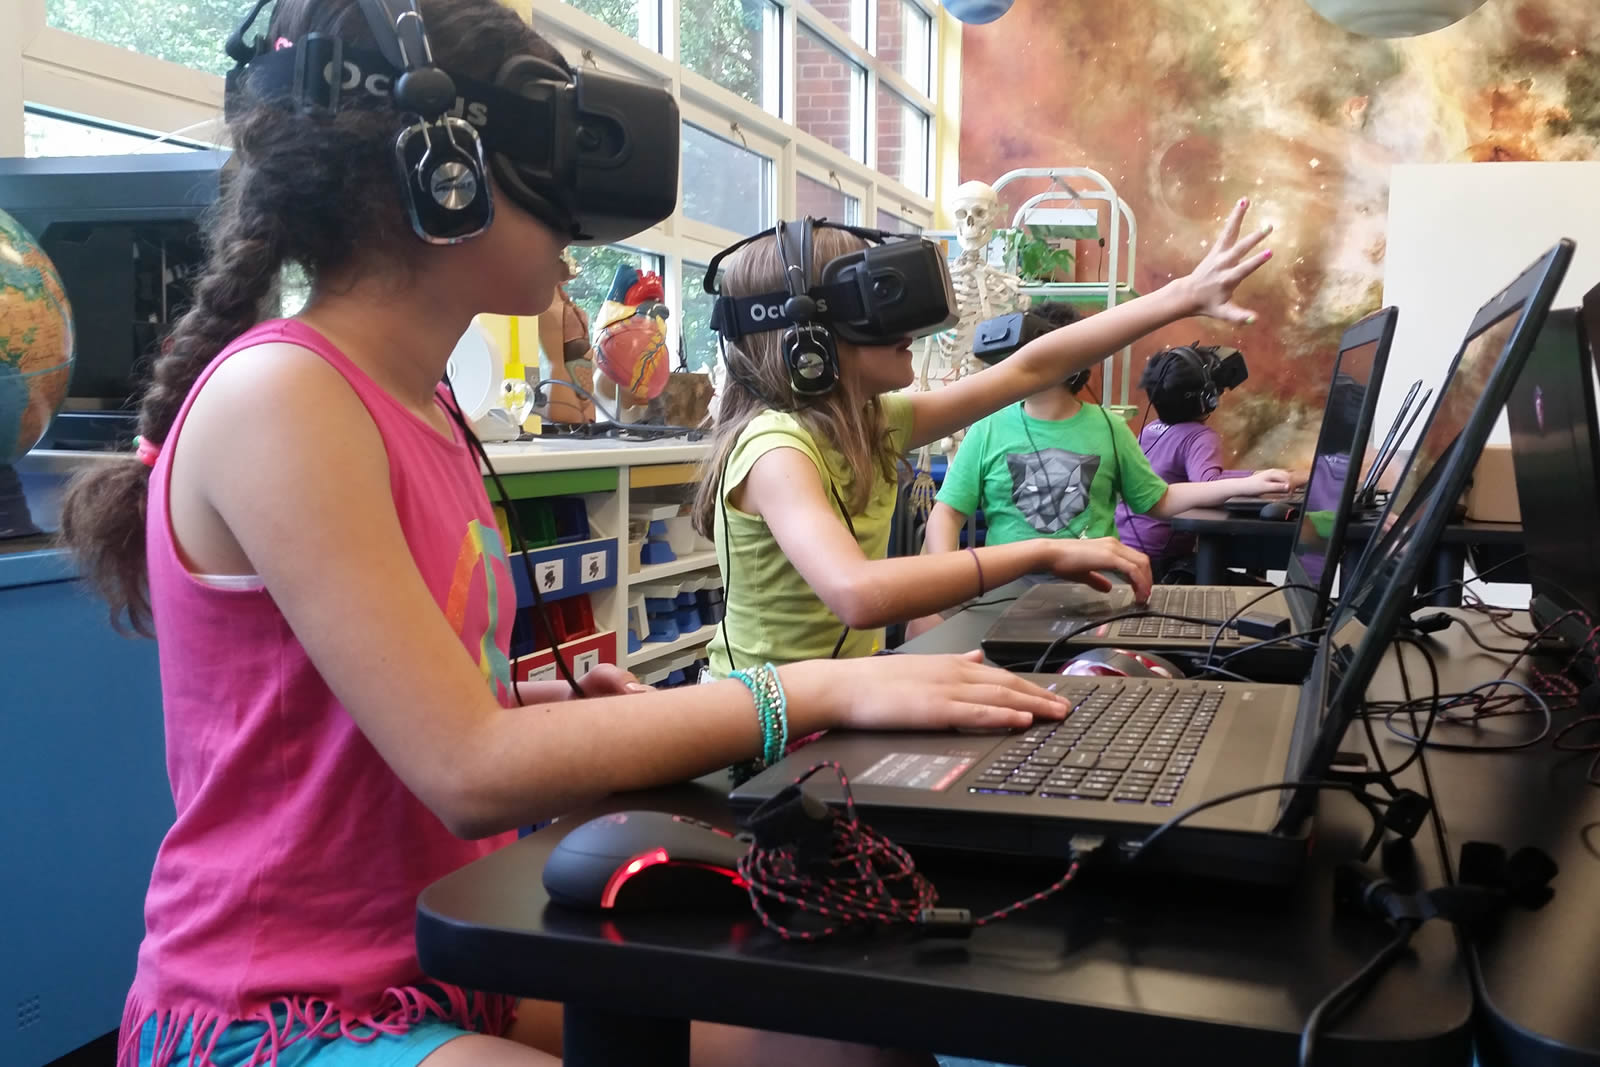 DSC Starts Using Virtual Reality in Education